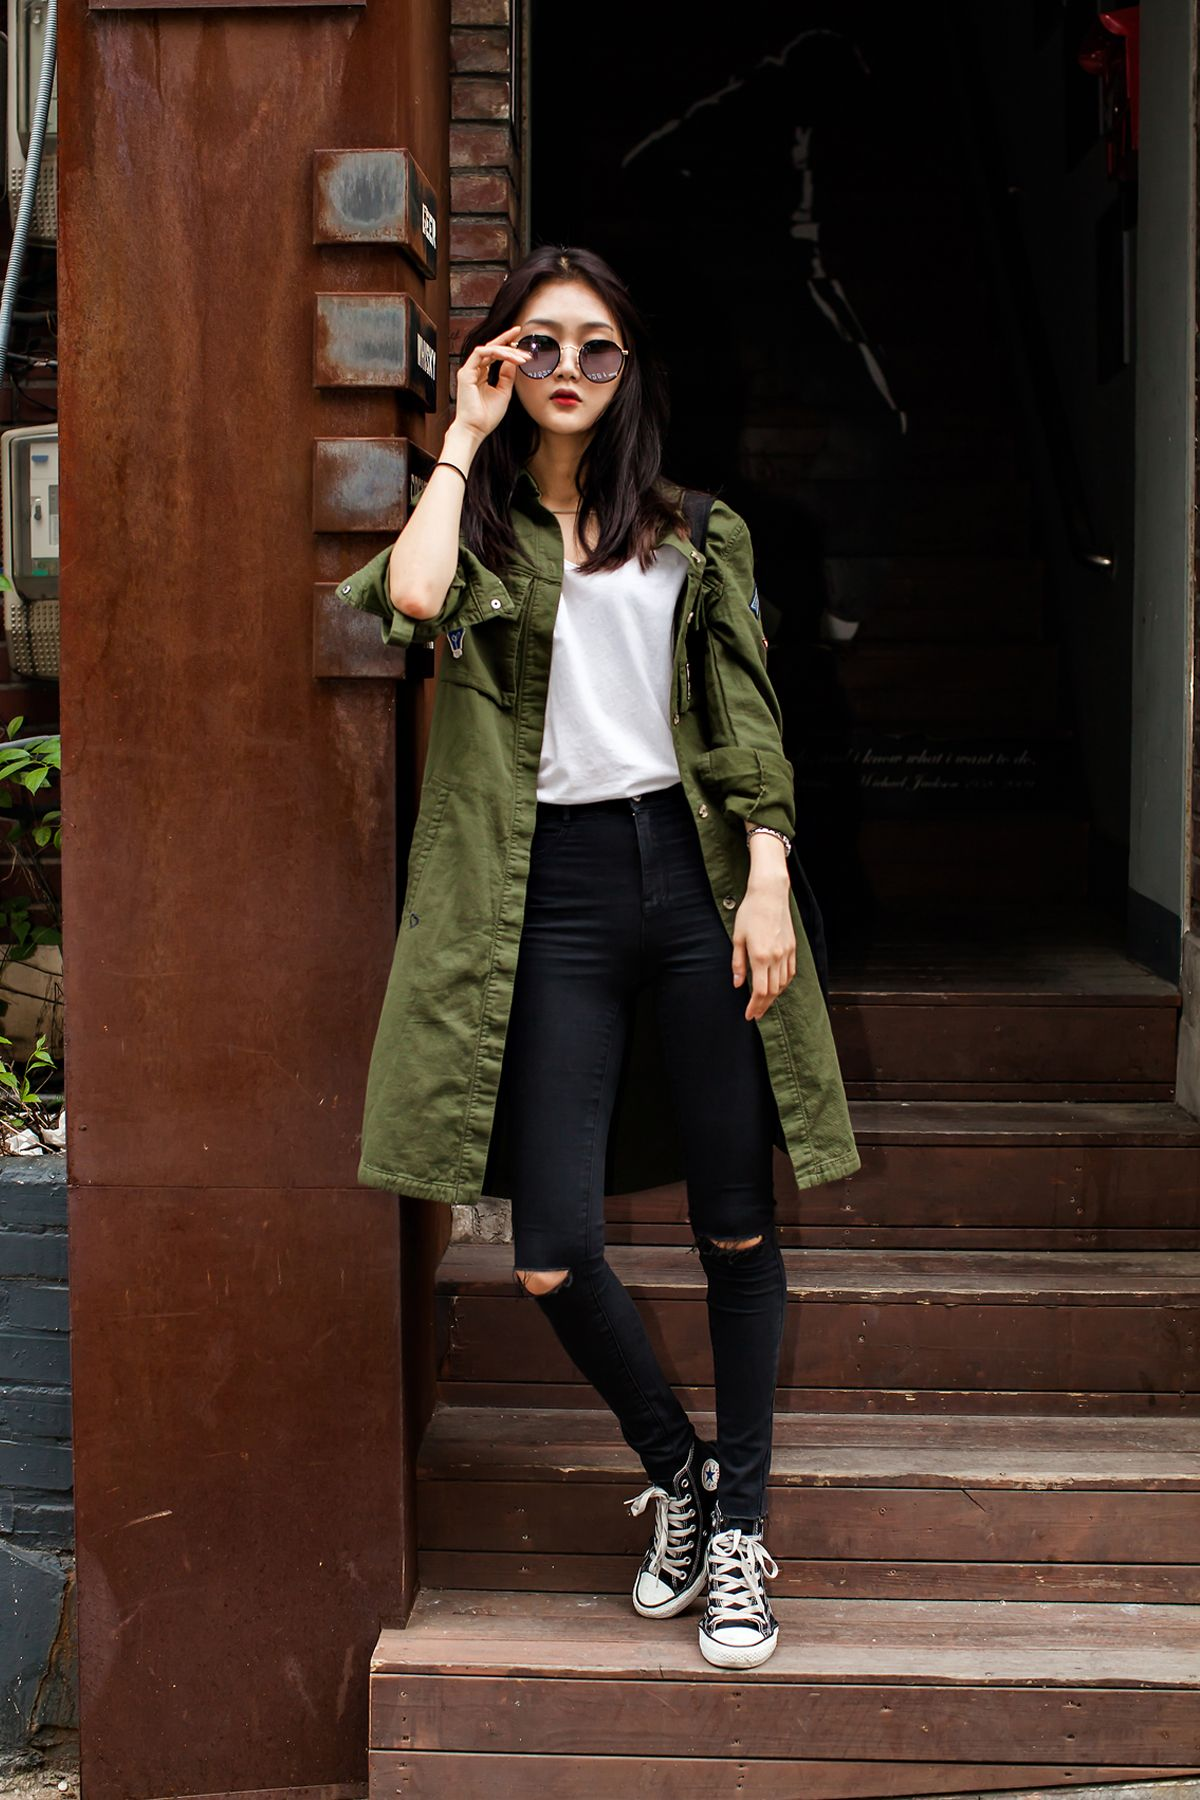 Street Style Choi Moonyoung Seoul Pinterest Seoul Street Styles And Street